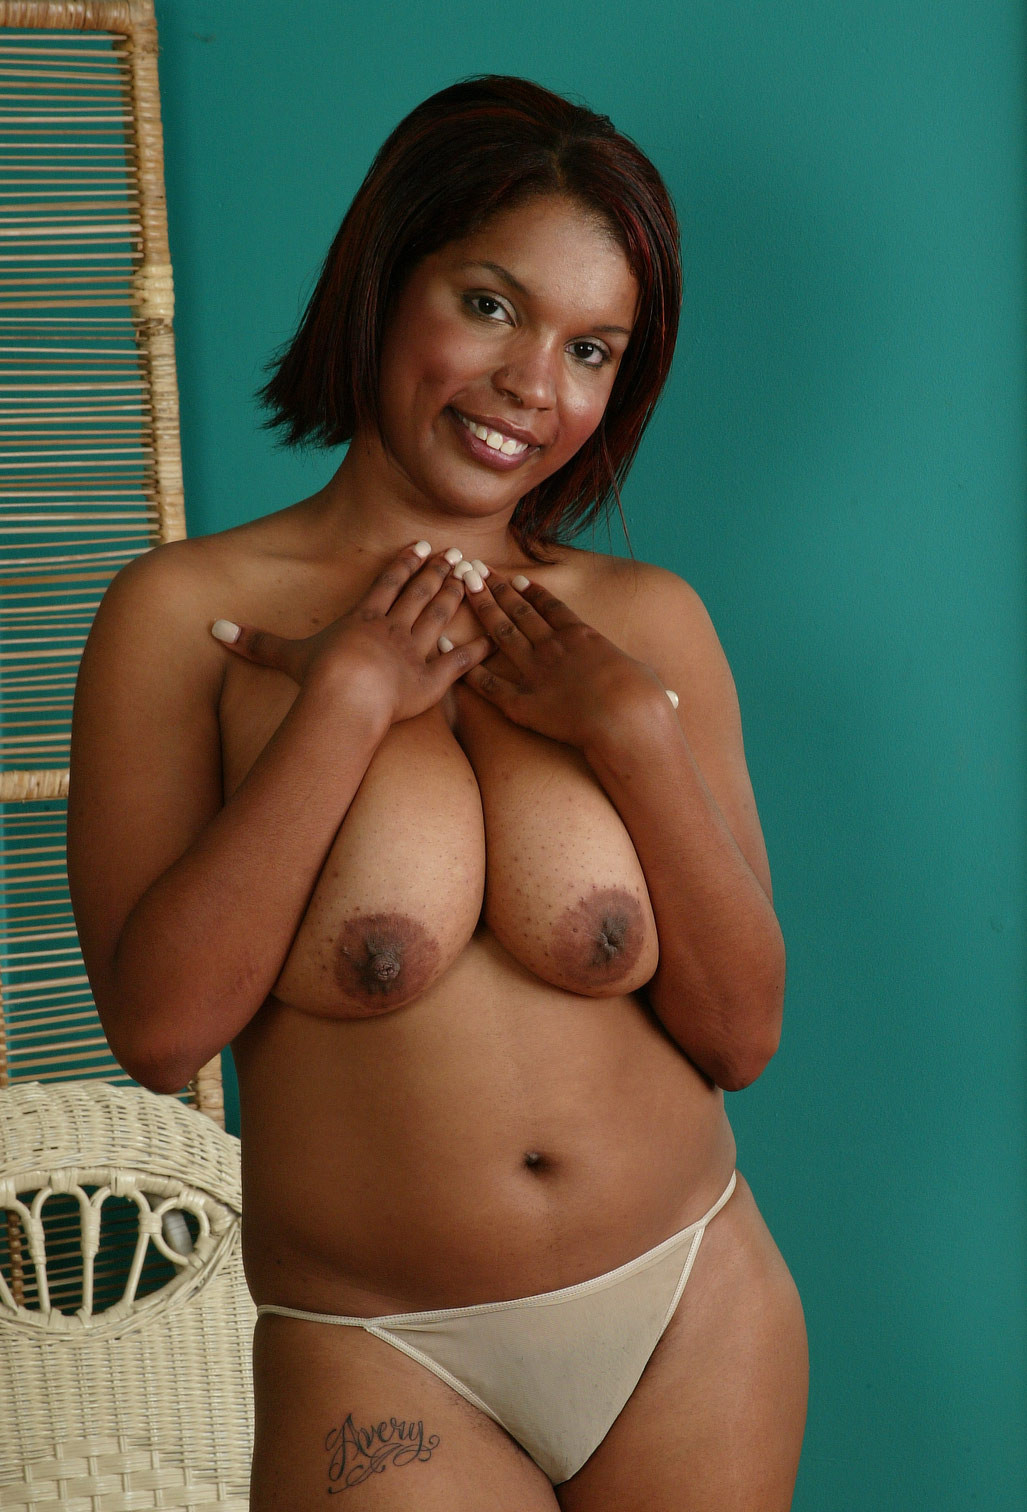 Accept. beautiful big black boobs excited